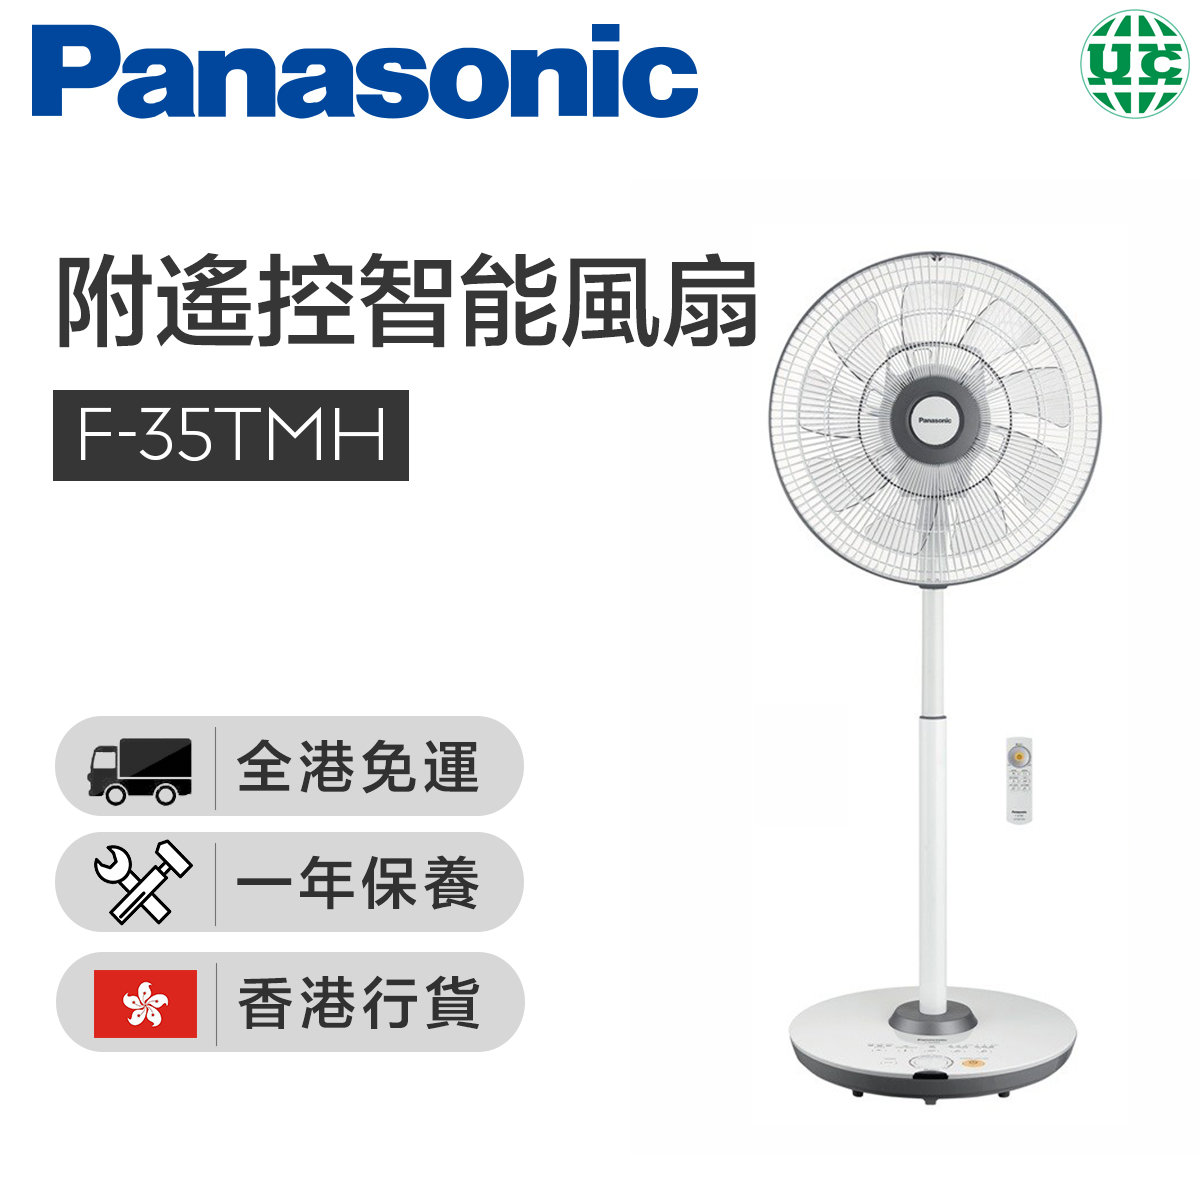 F-35TMH with remote control smart fan(Hong Kong licensed)